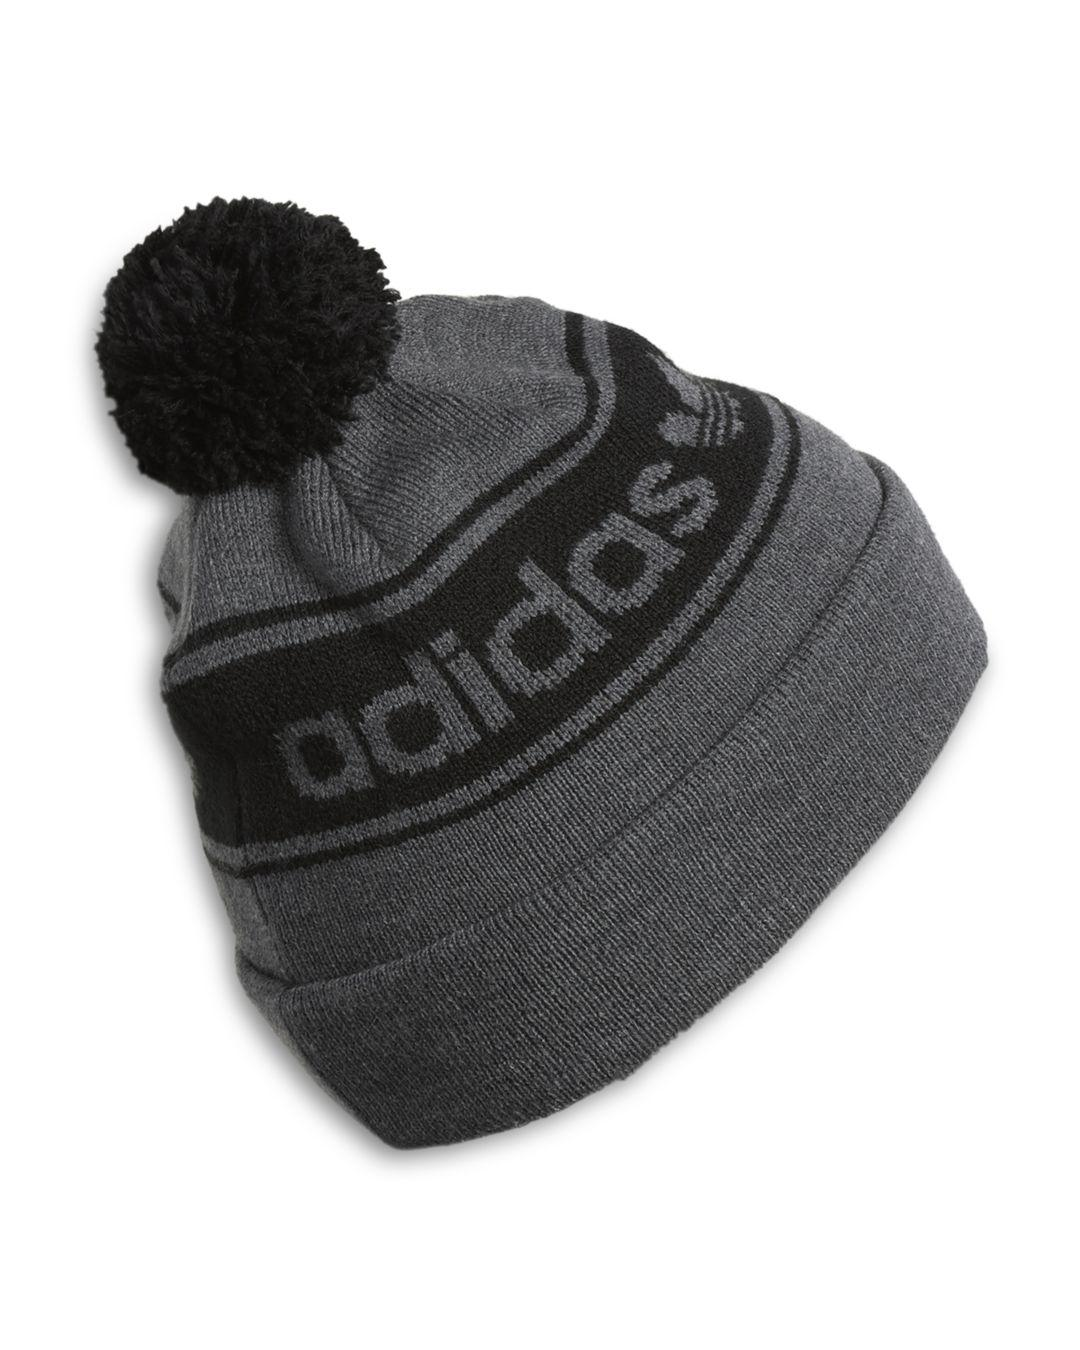 Lyst - Adidas Originals Logo-stripe Pom-pom Beanie in Black for Men 1d8405b56e63